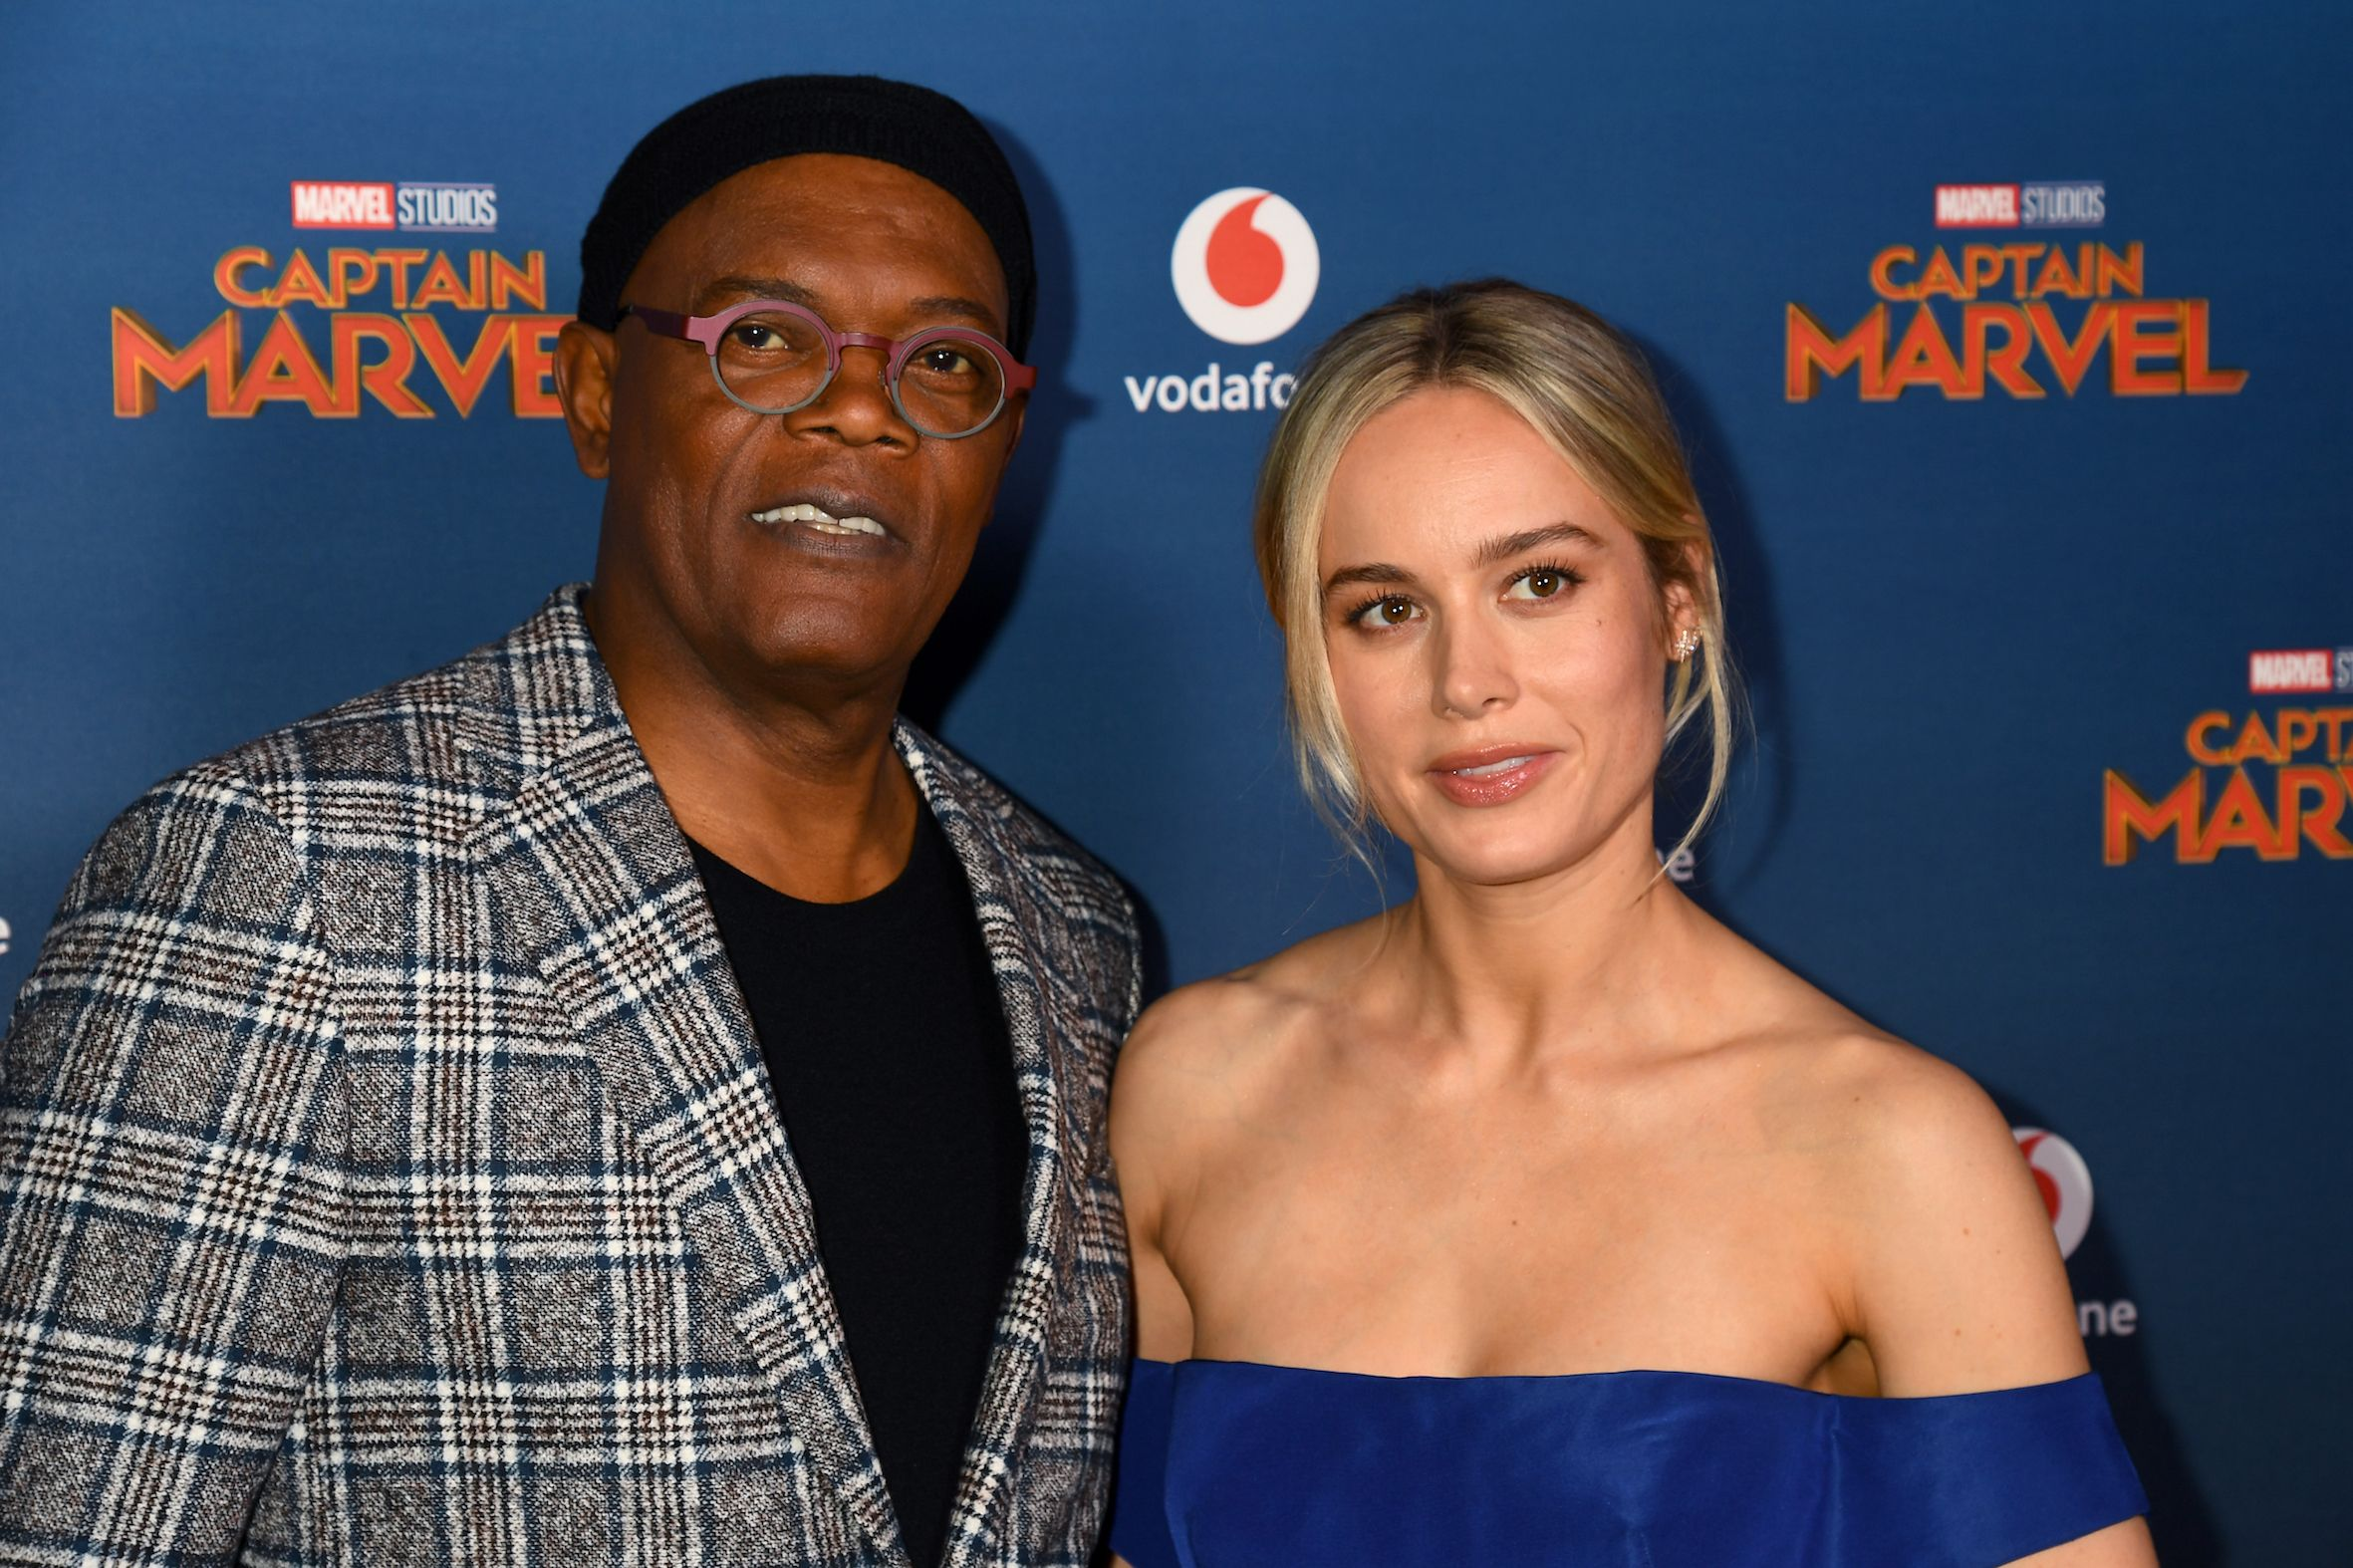 Captain Marvel's Brie Larson and Samuel L Jackson bonded over hating the  same people